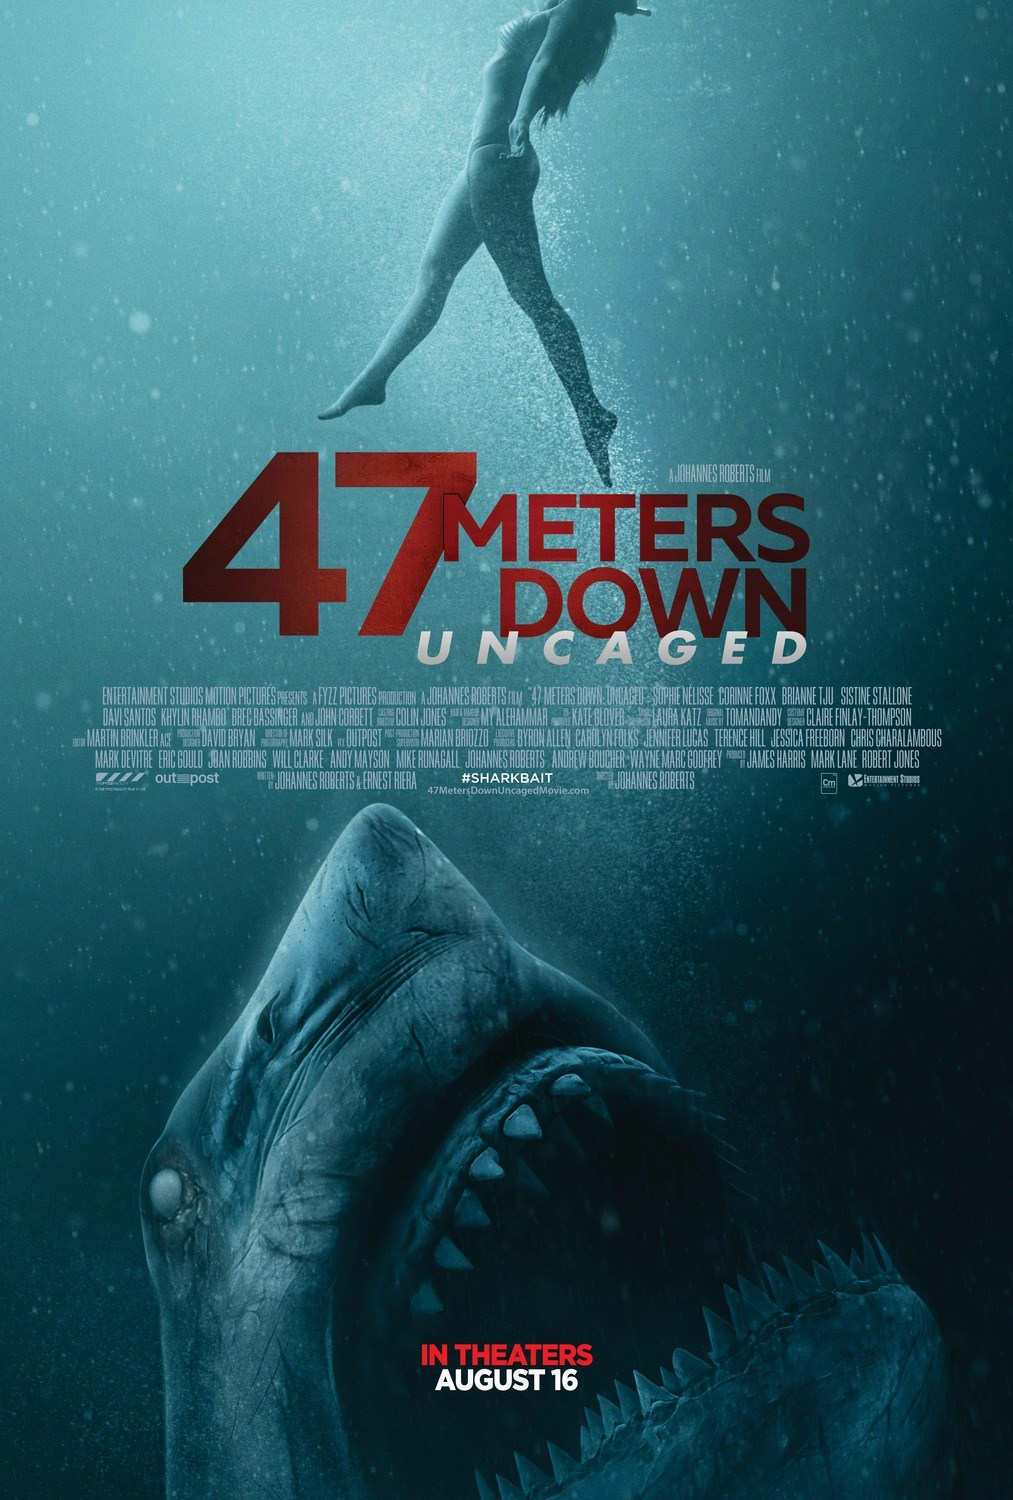 47 Meters Down Uncaged Trailer & Poster